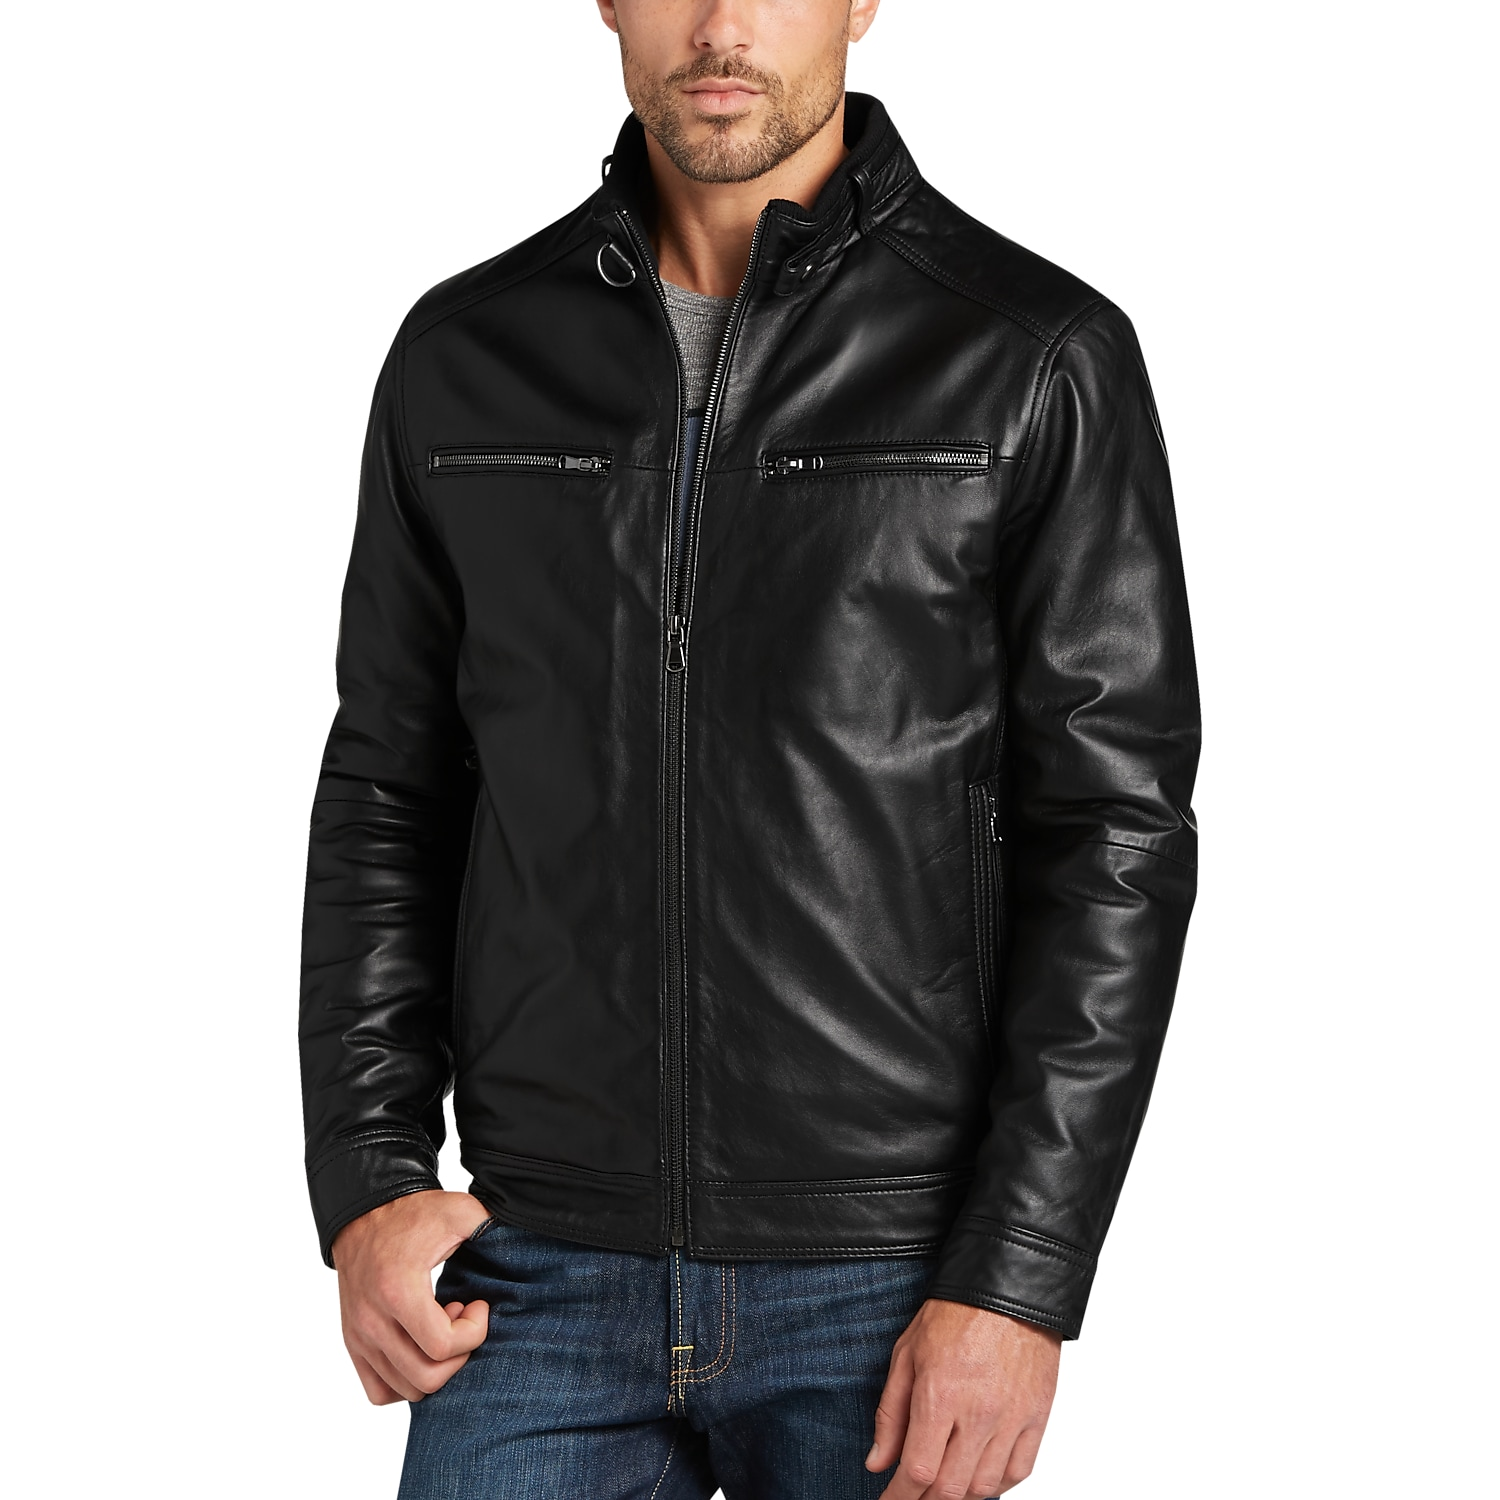 Leather Jackets - Men's Leather Jacket | Men's Wearhouse